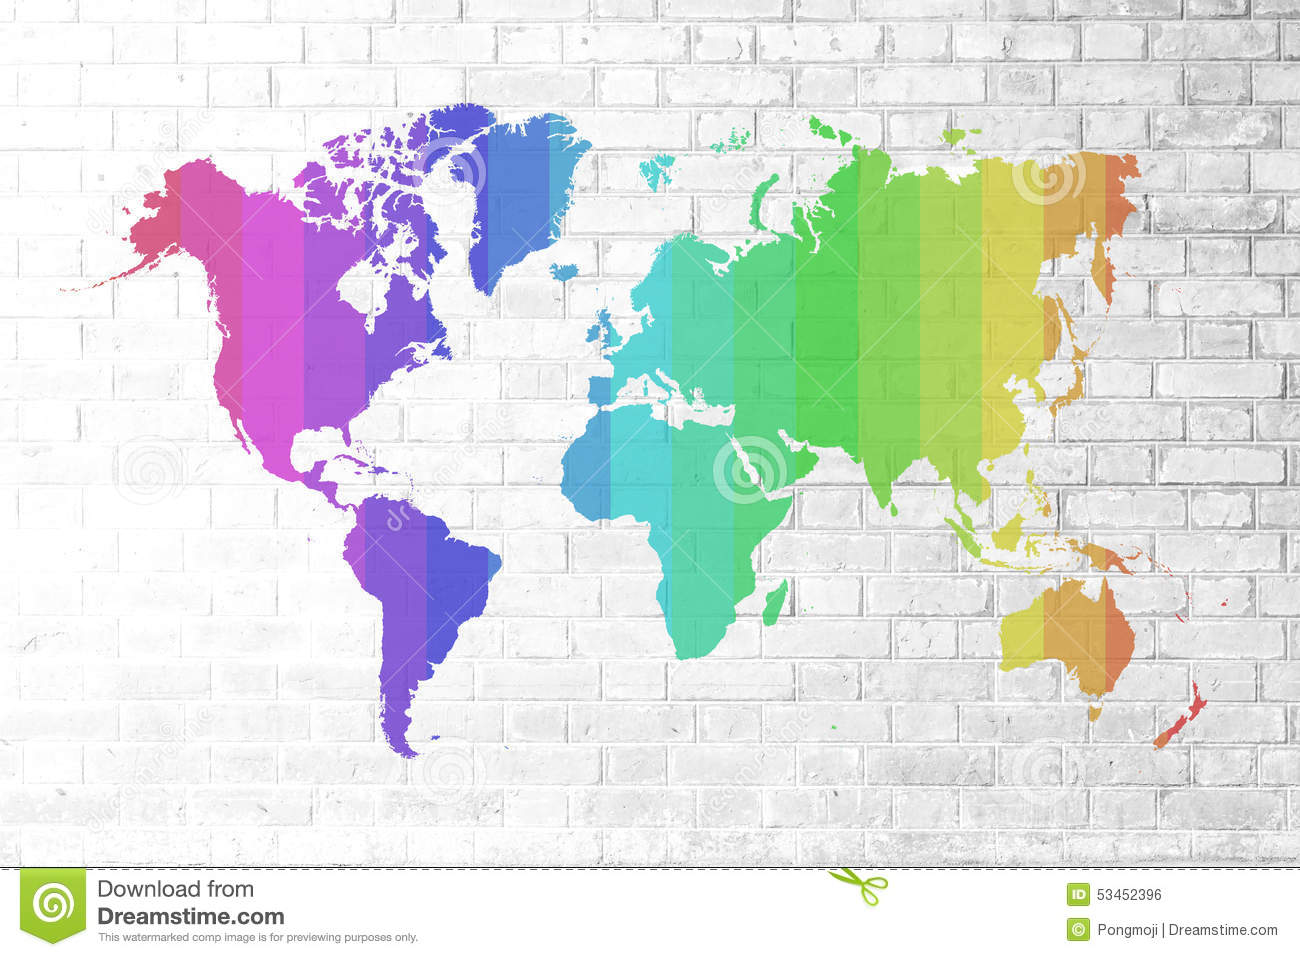 Red brick wall texture soft tone colorful world map stock photo image 53452396 - World of color wallpaper ...